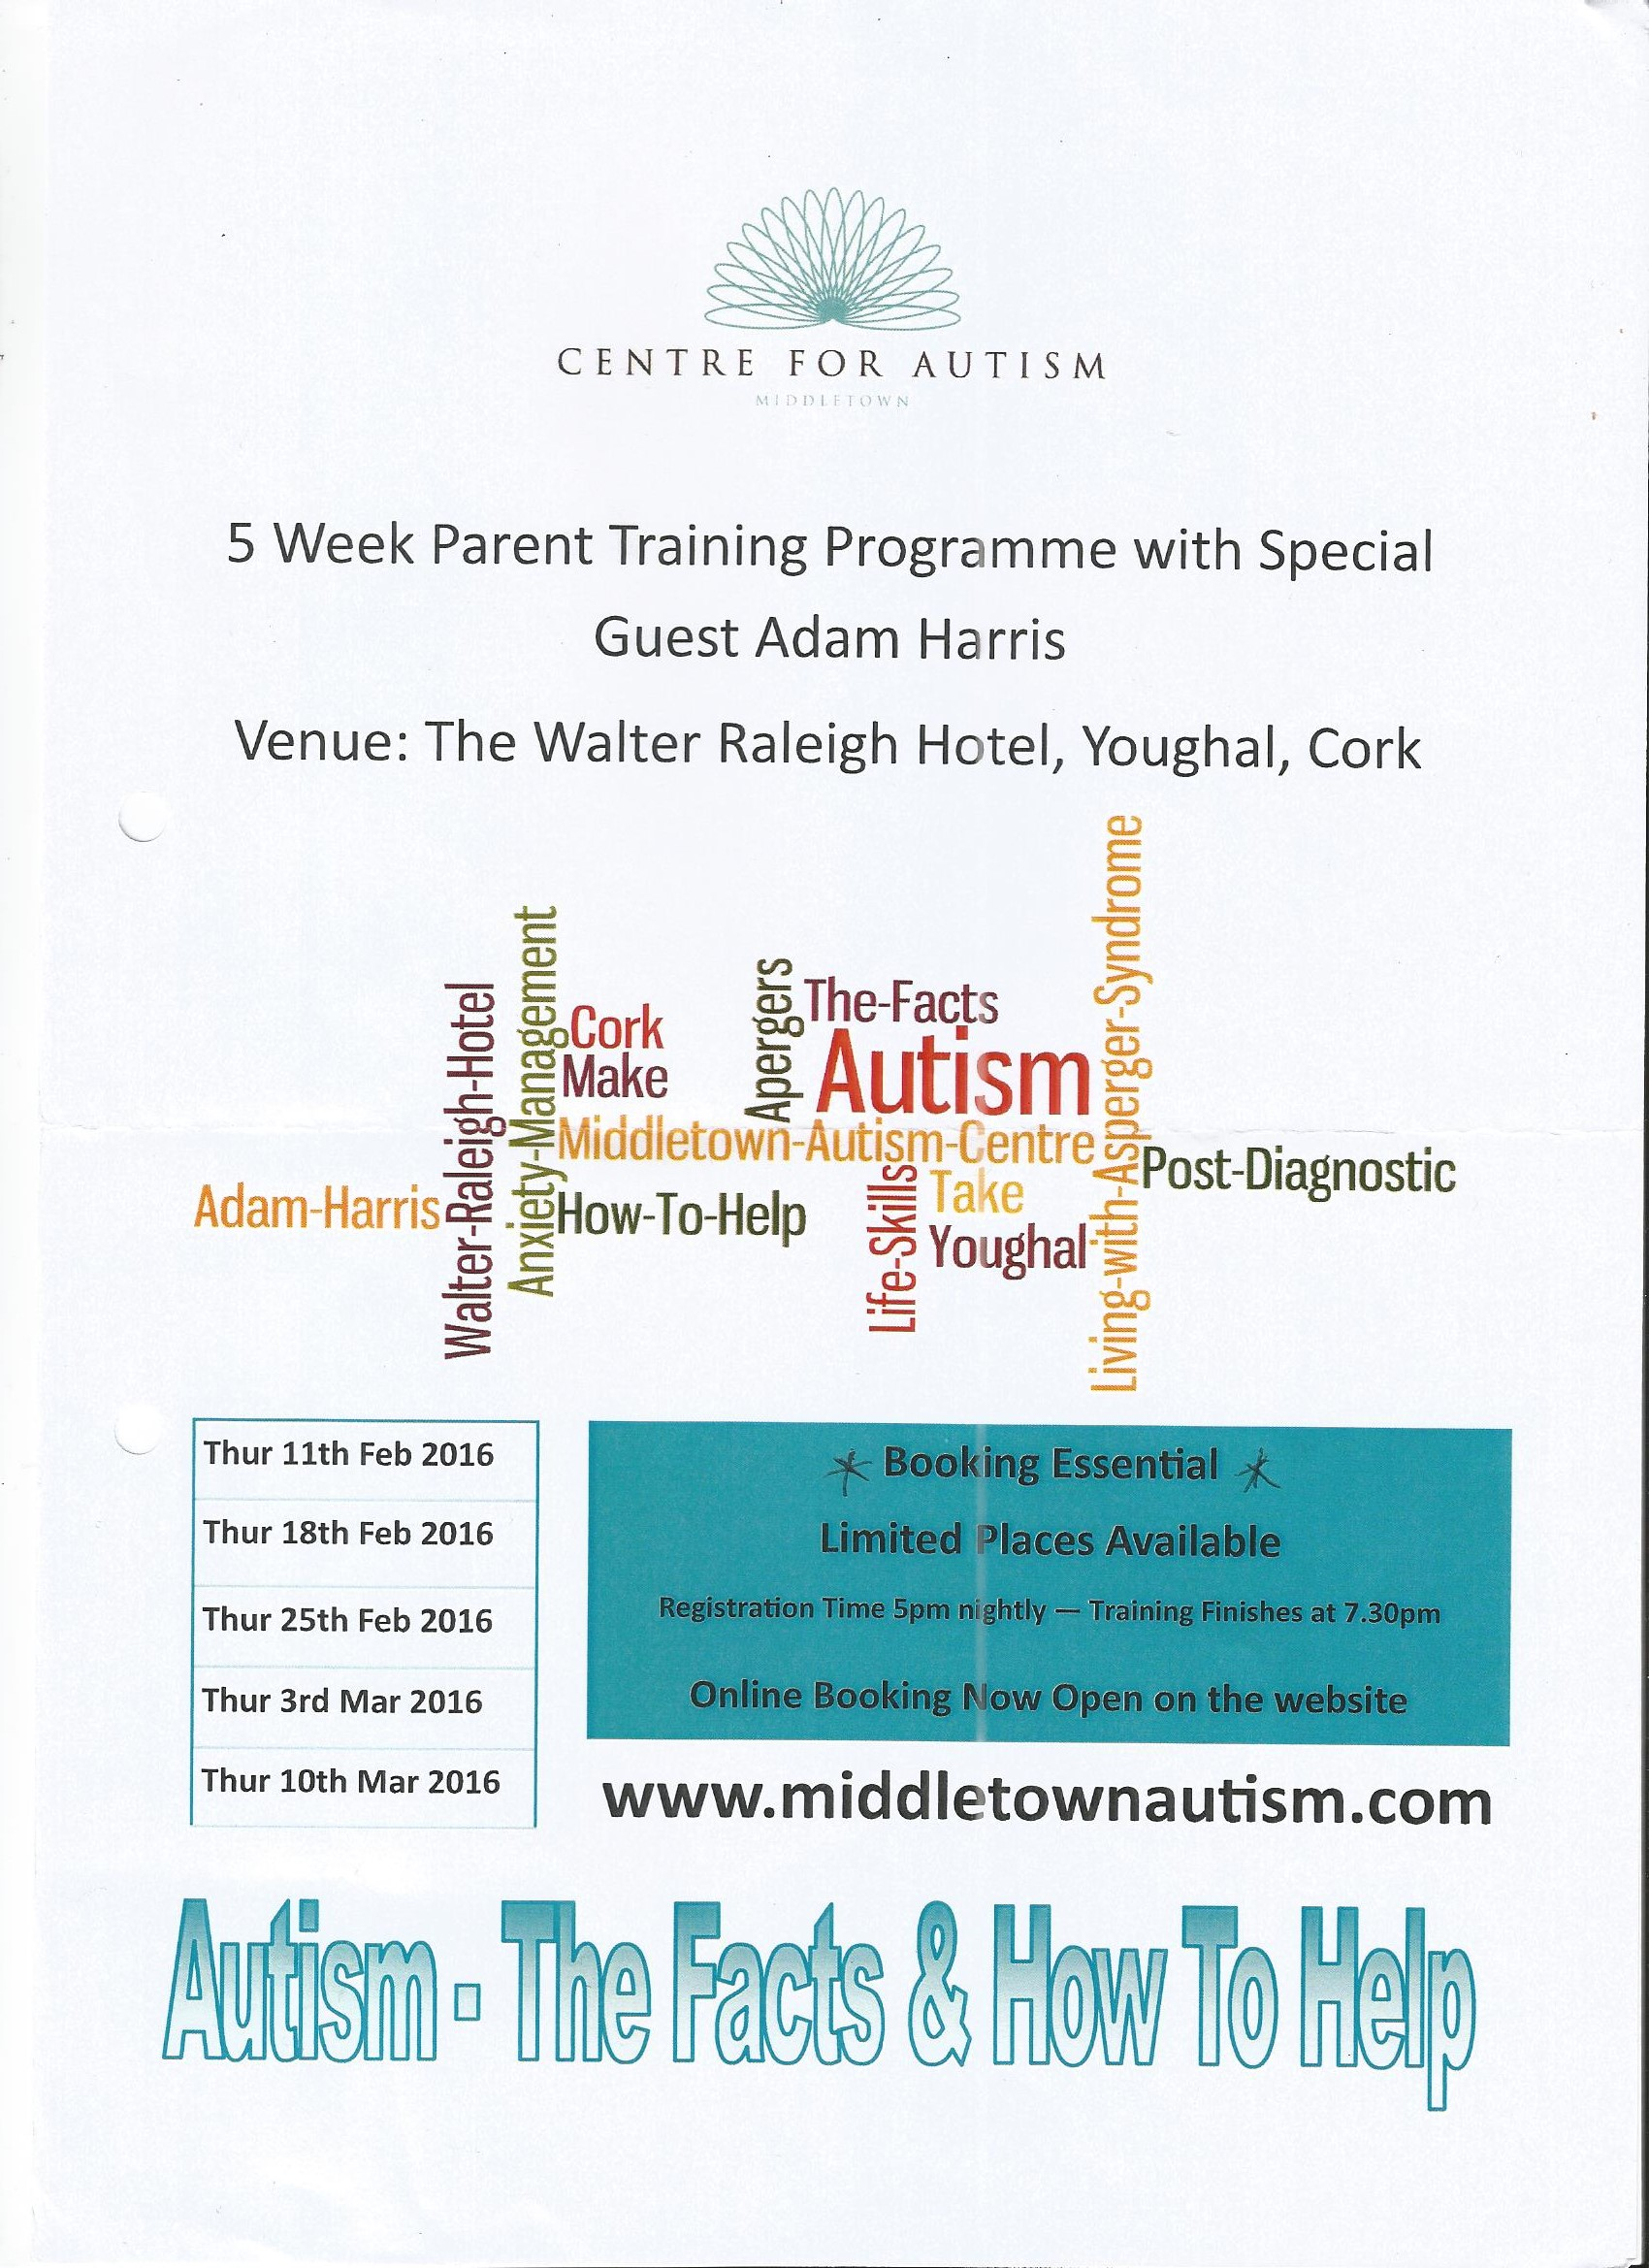 Midleton CBS Autism The Facts & How To Help